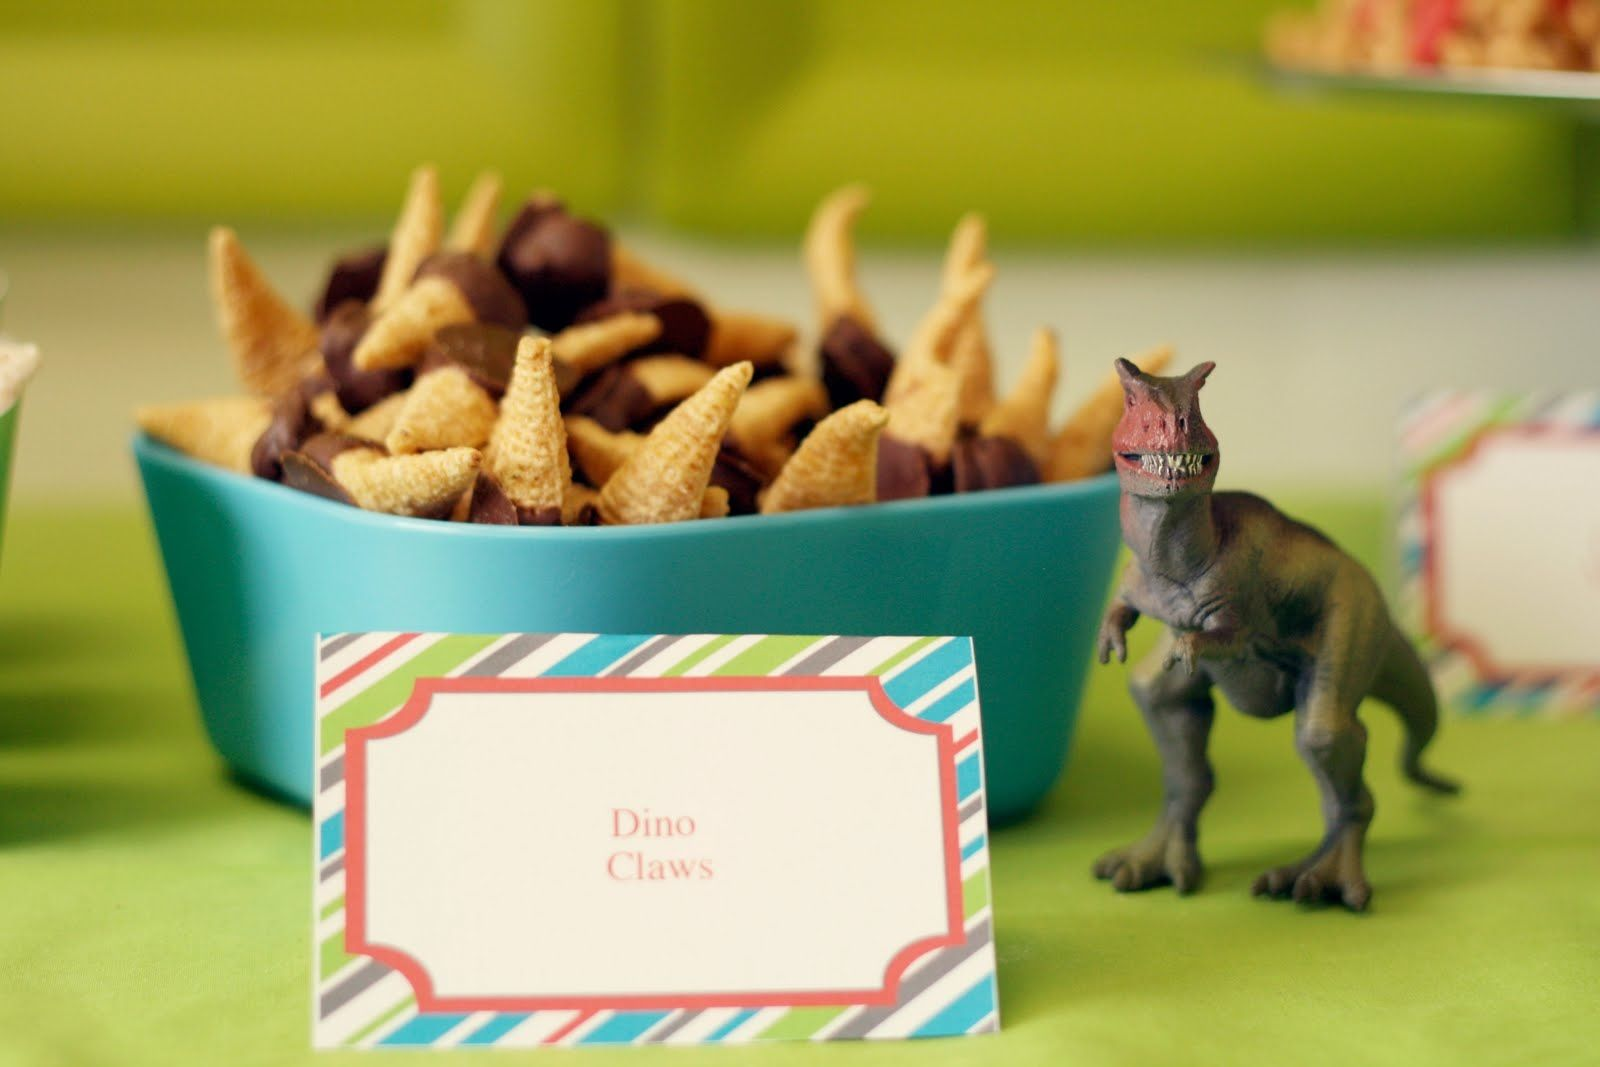 Dinosaur party food  Birthday Party ideas  Pinterest